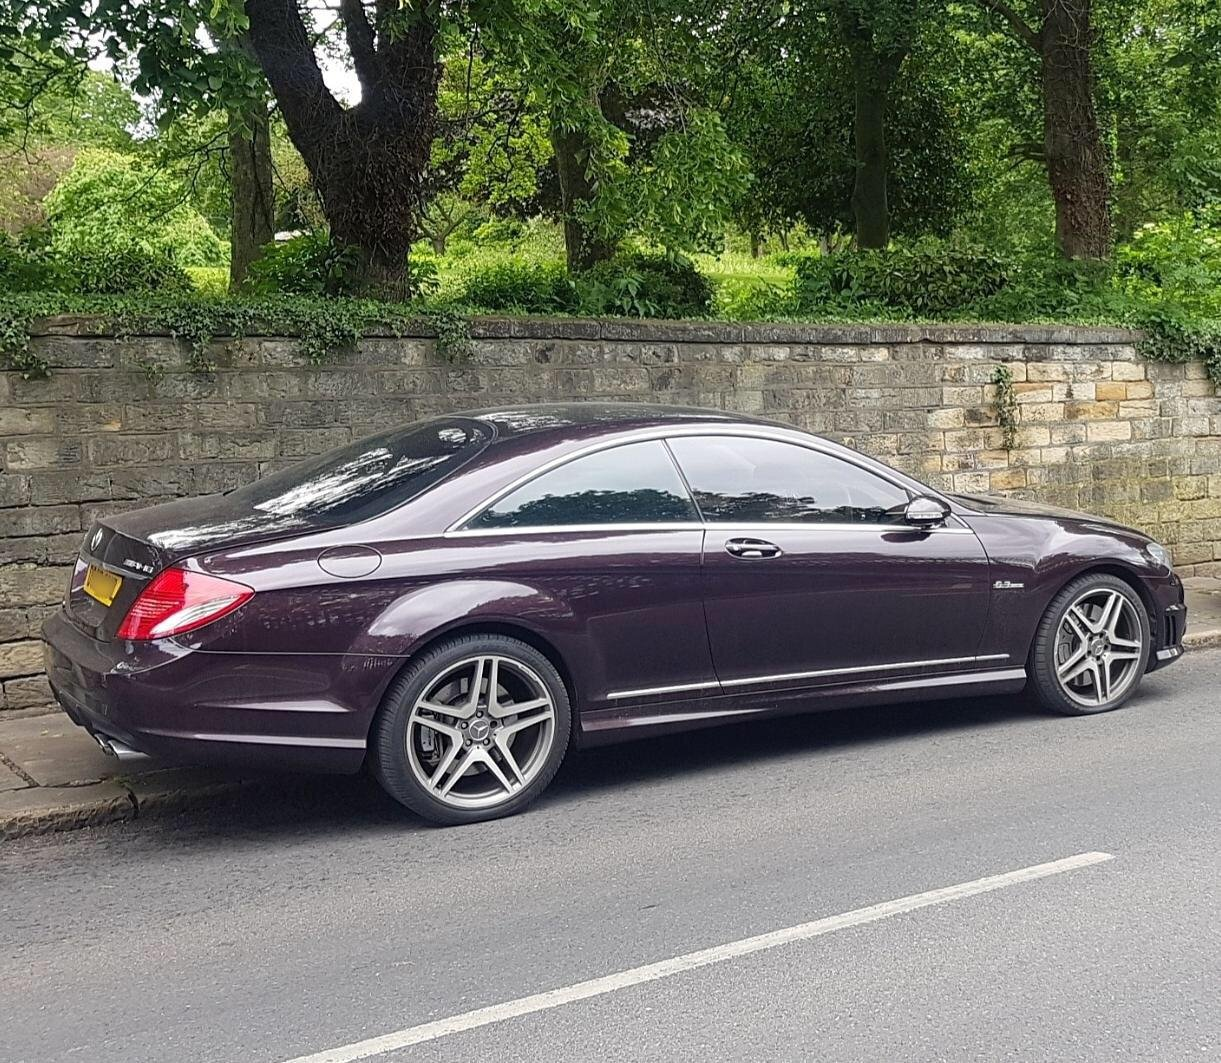 Mercerdes CL63 AMG 2008 57 Rare Colour 7G Tronic For Sale (picture 2 of 5)